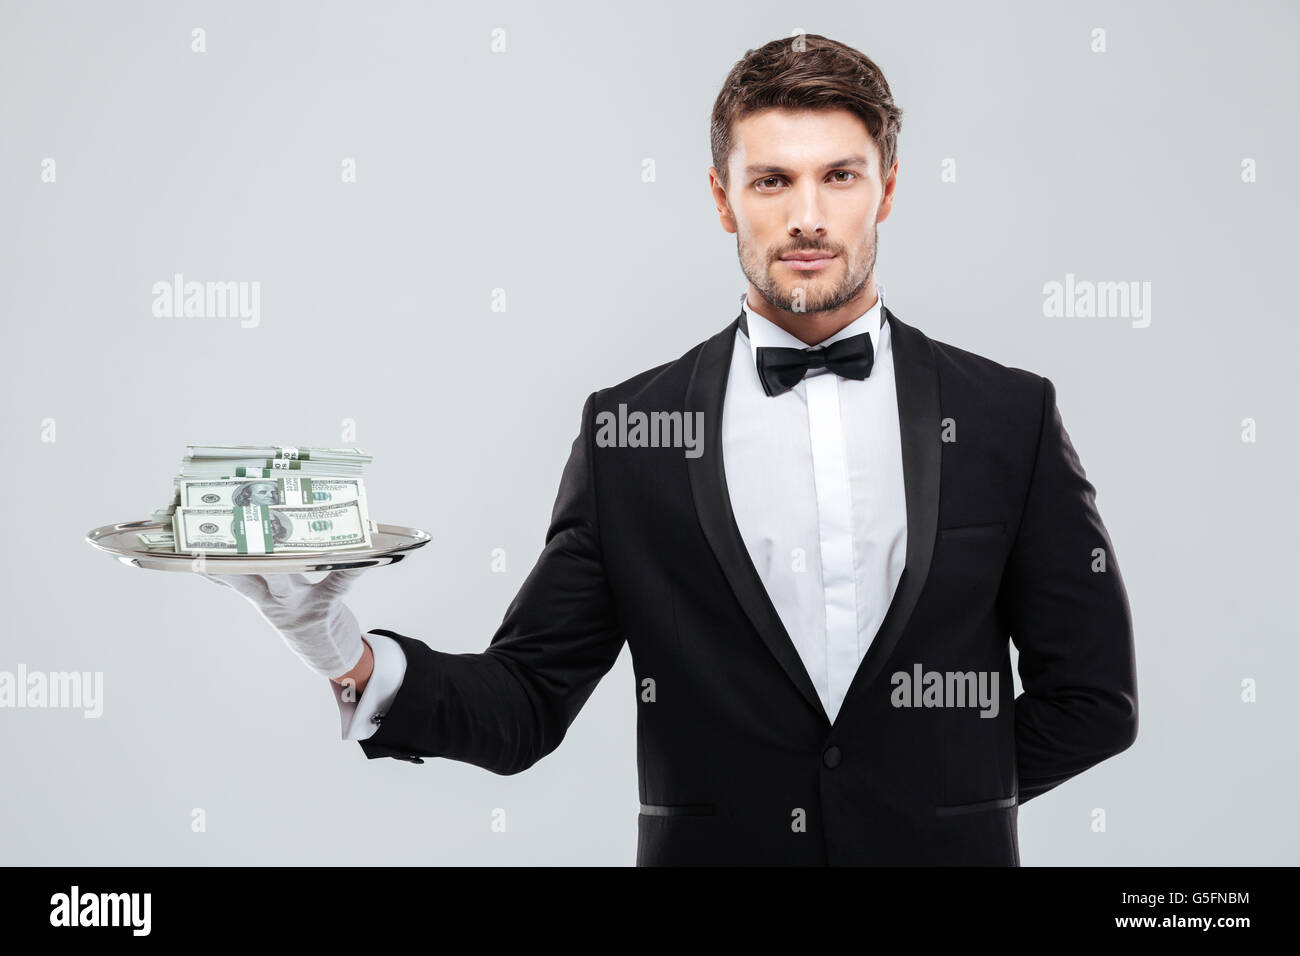 Handsome young waiter in tuxedo standing and holding money on tray Stock Photo